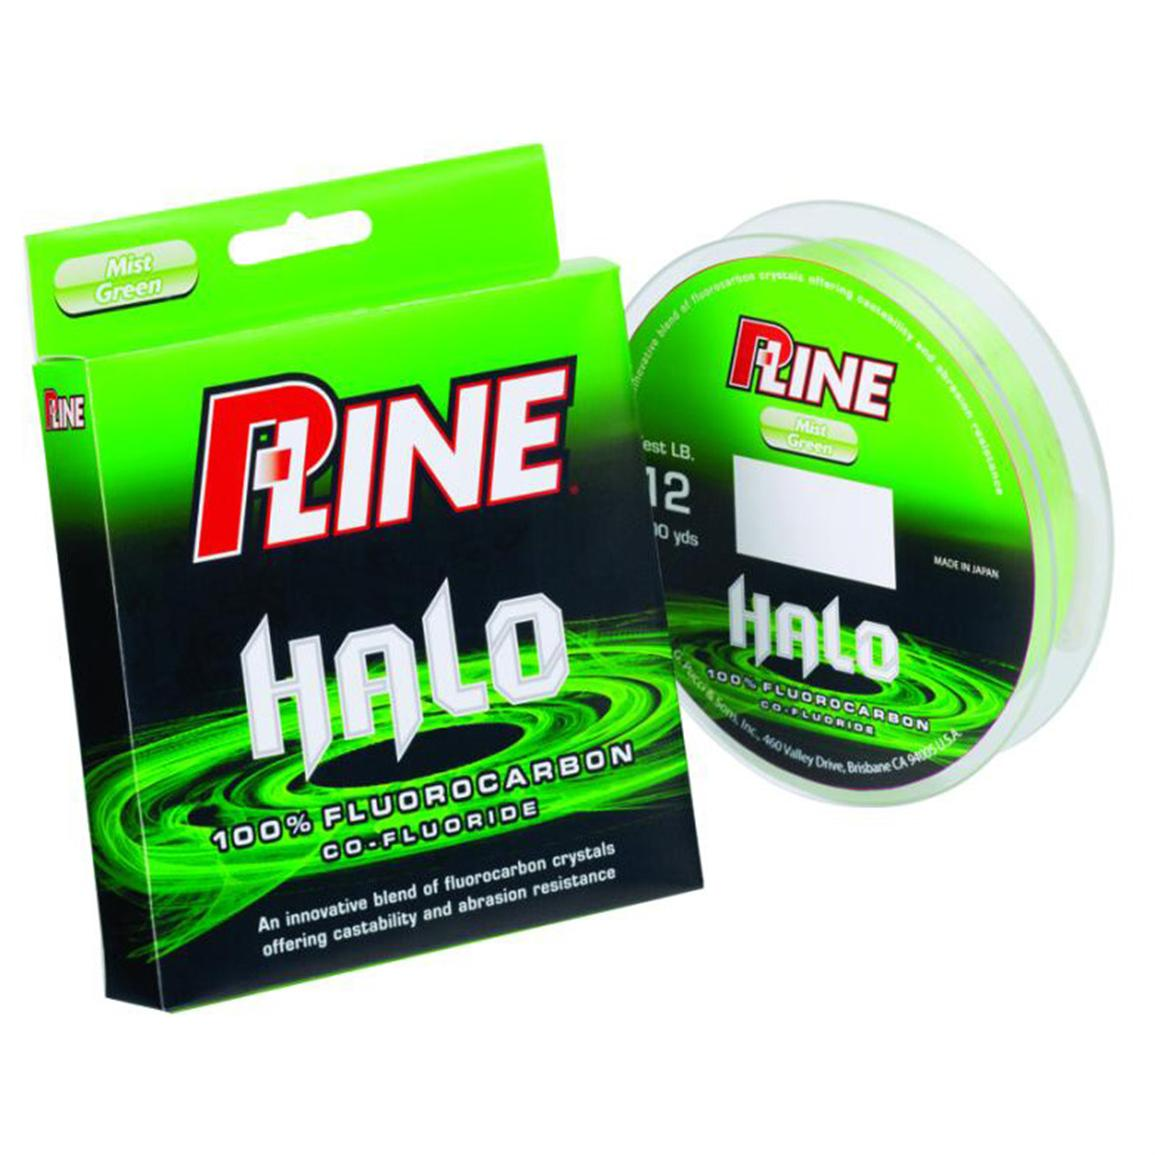 P-Line Halo Fluorocarbon Fishing Line by Generic